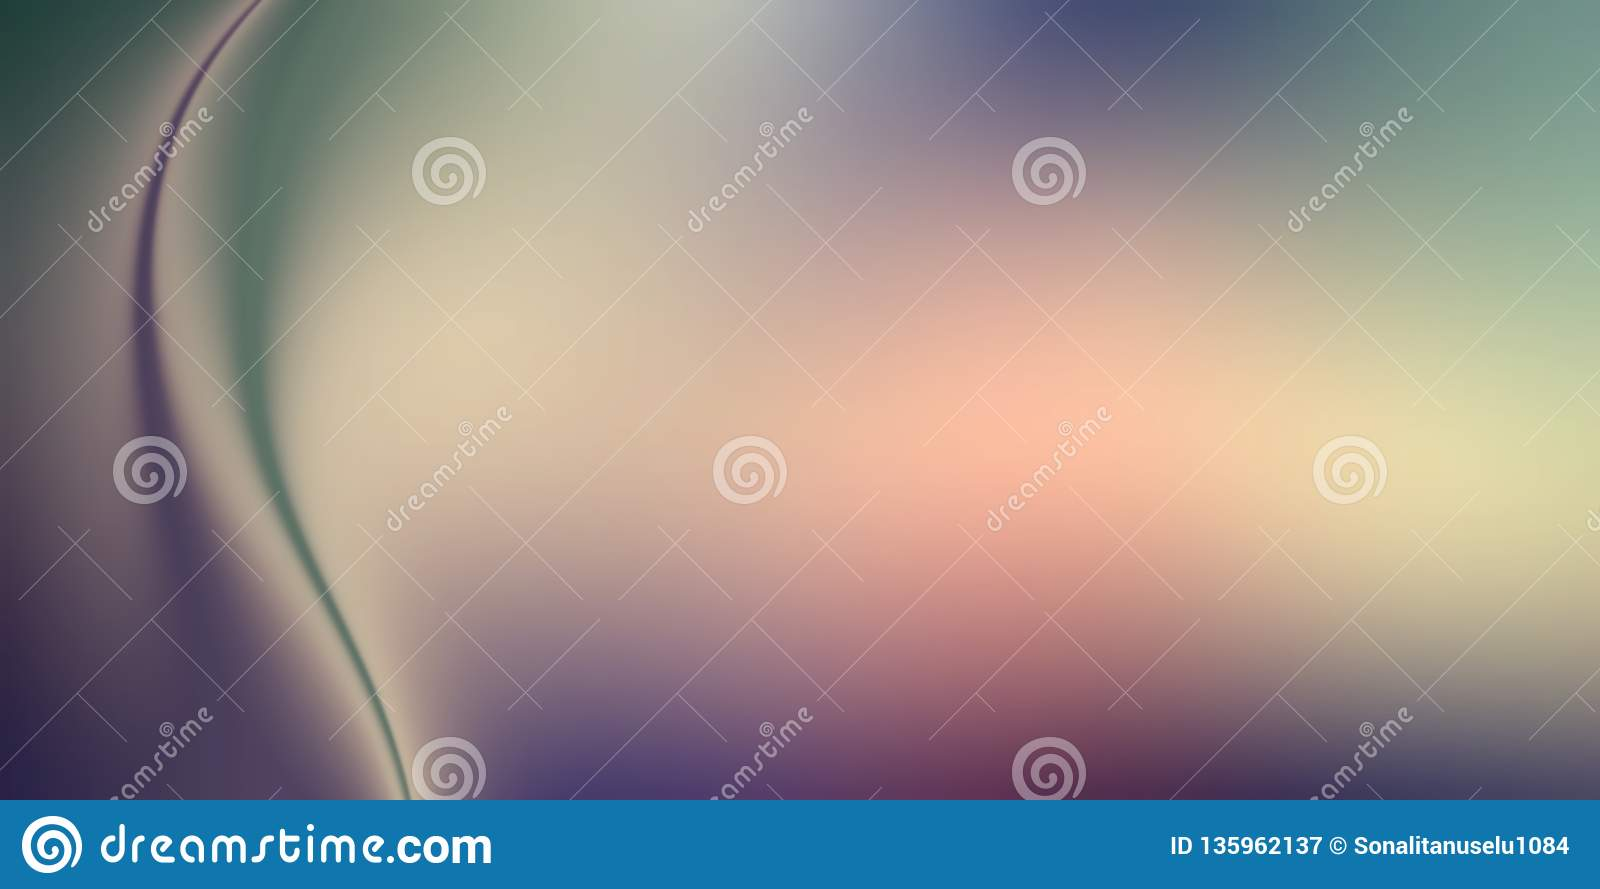 Abstract Blurry Background Wallpaper. Stock Illustration ...